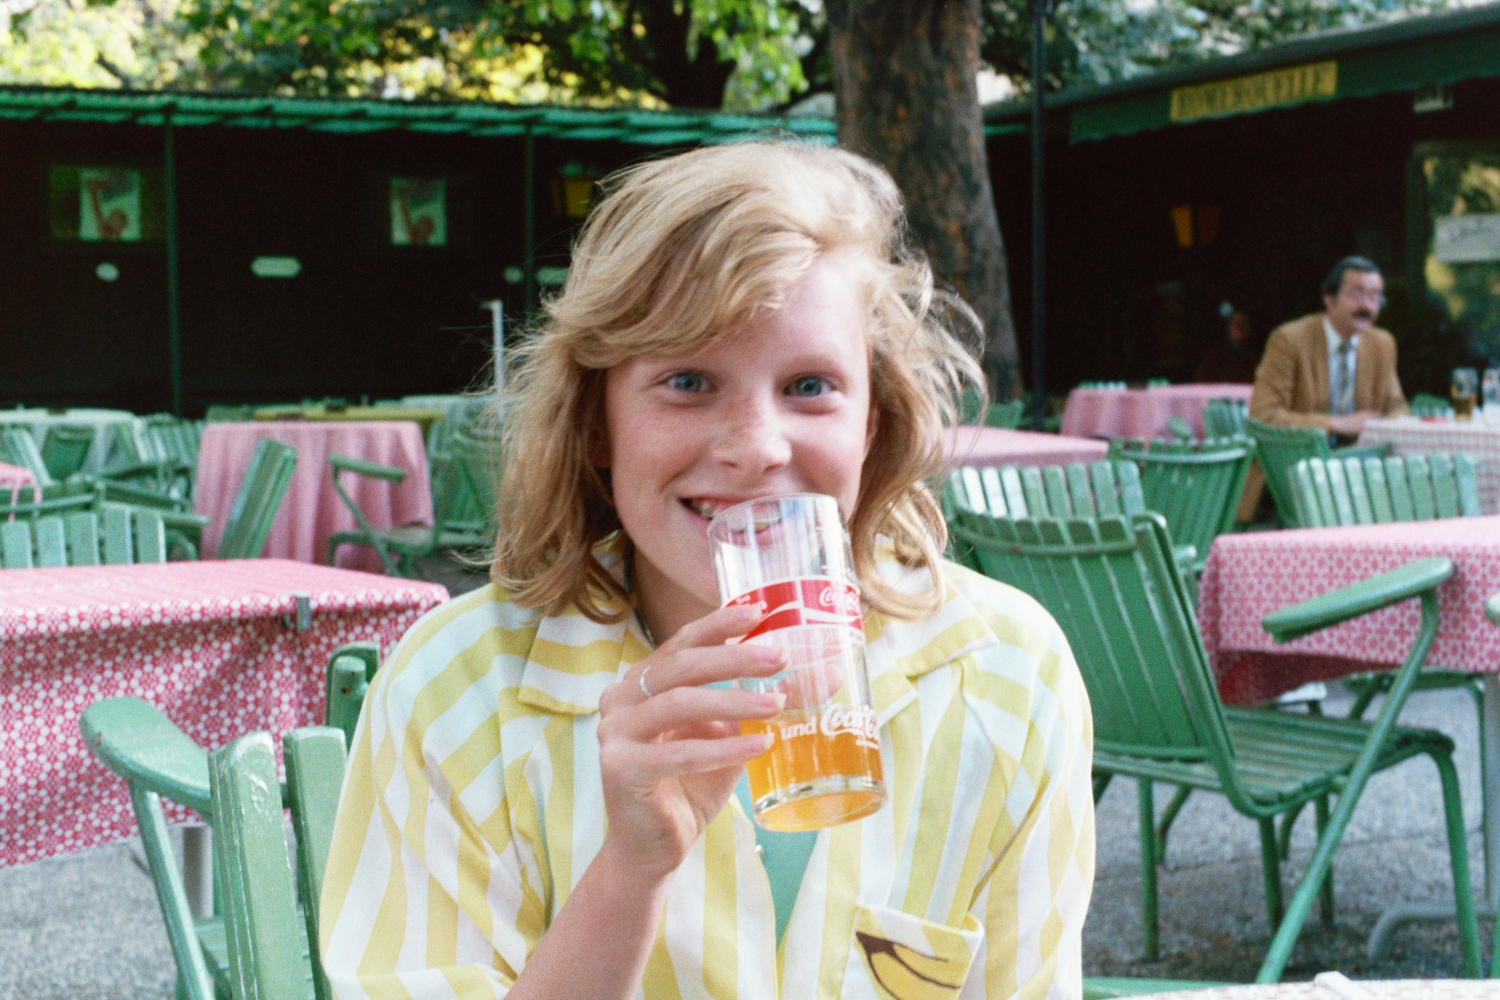 Amy Shearer drinks Almdudler in Vienna, 1987